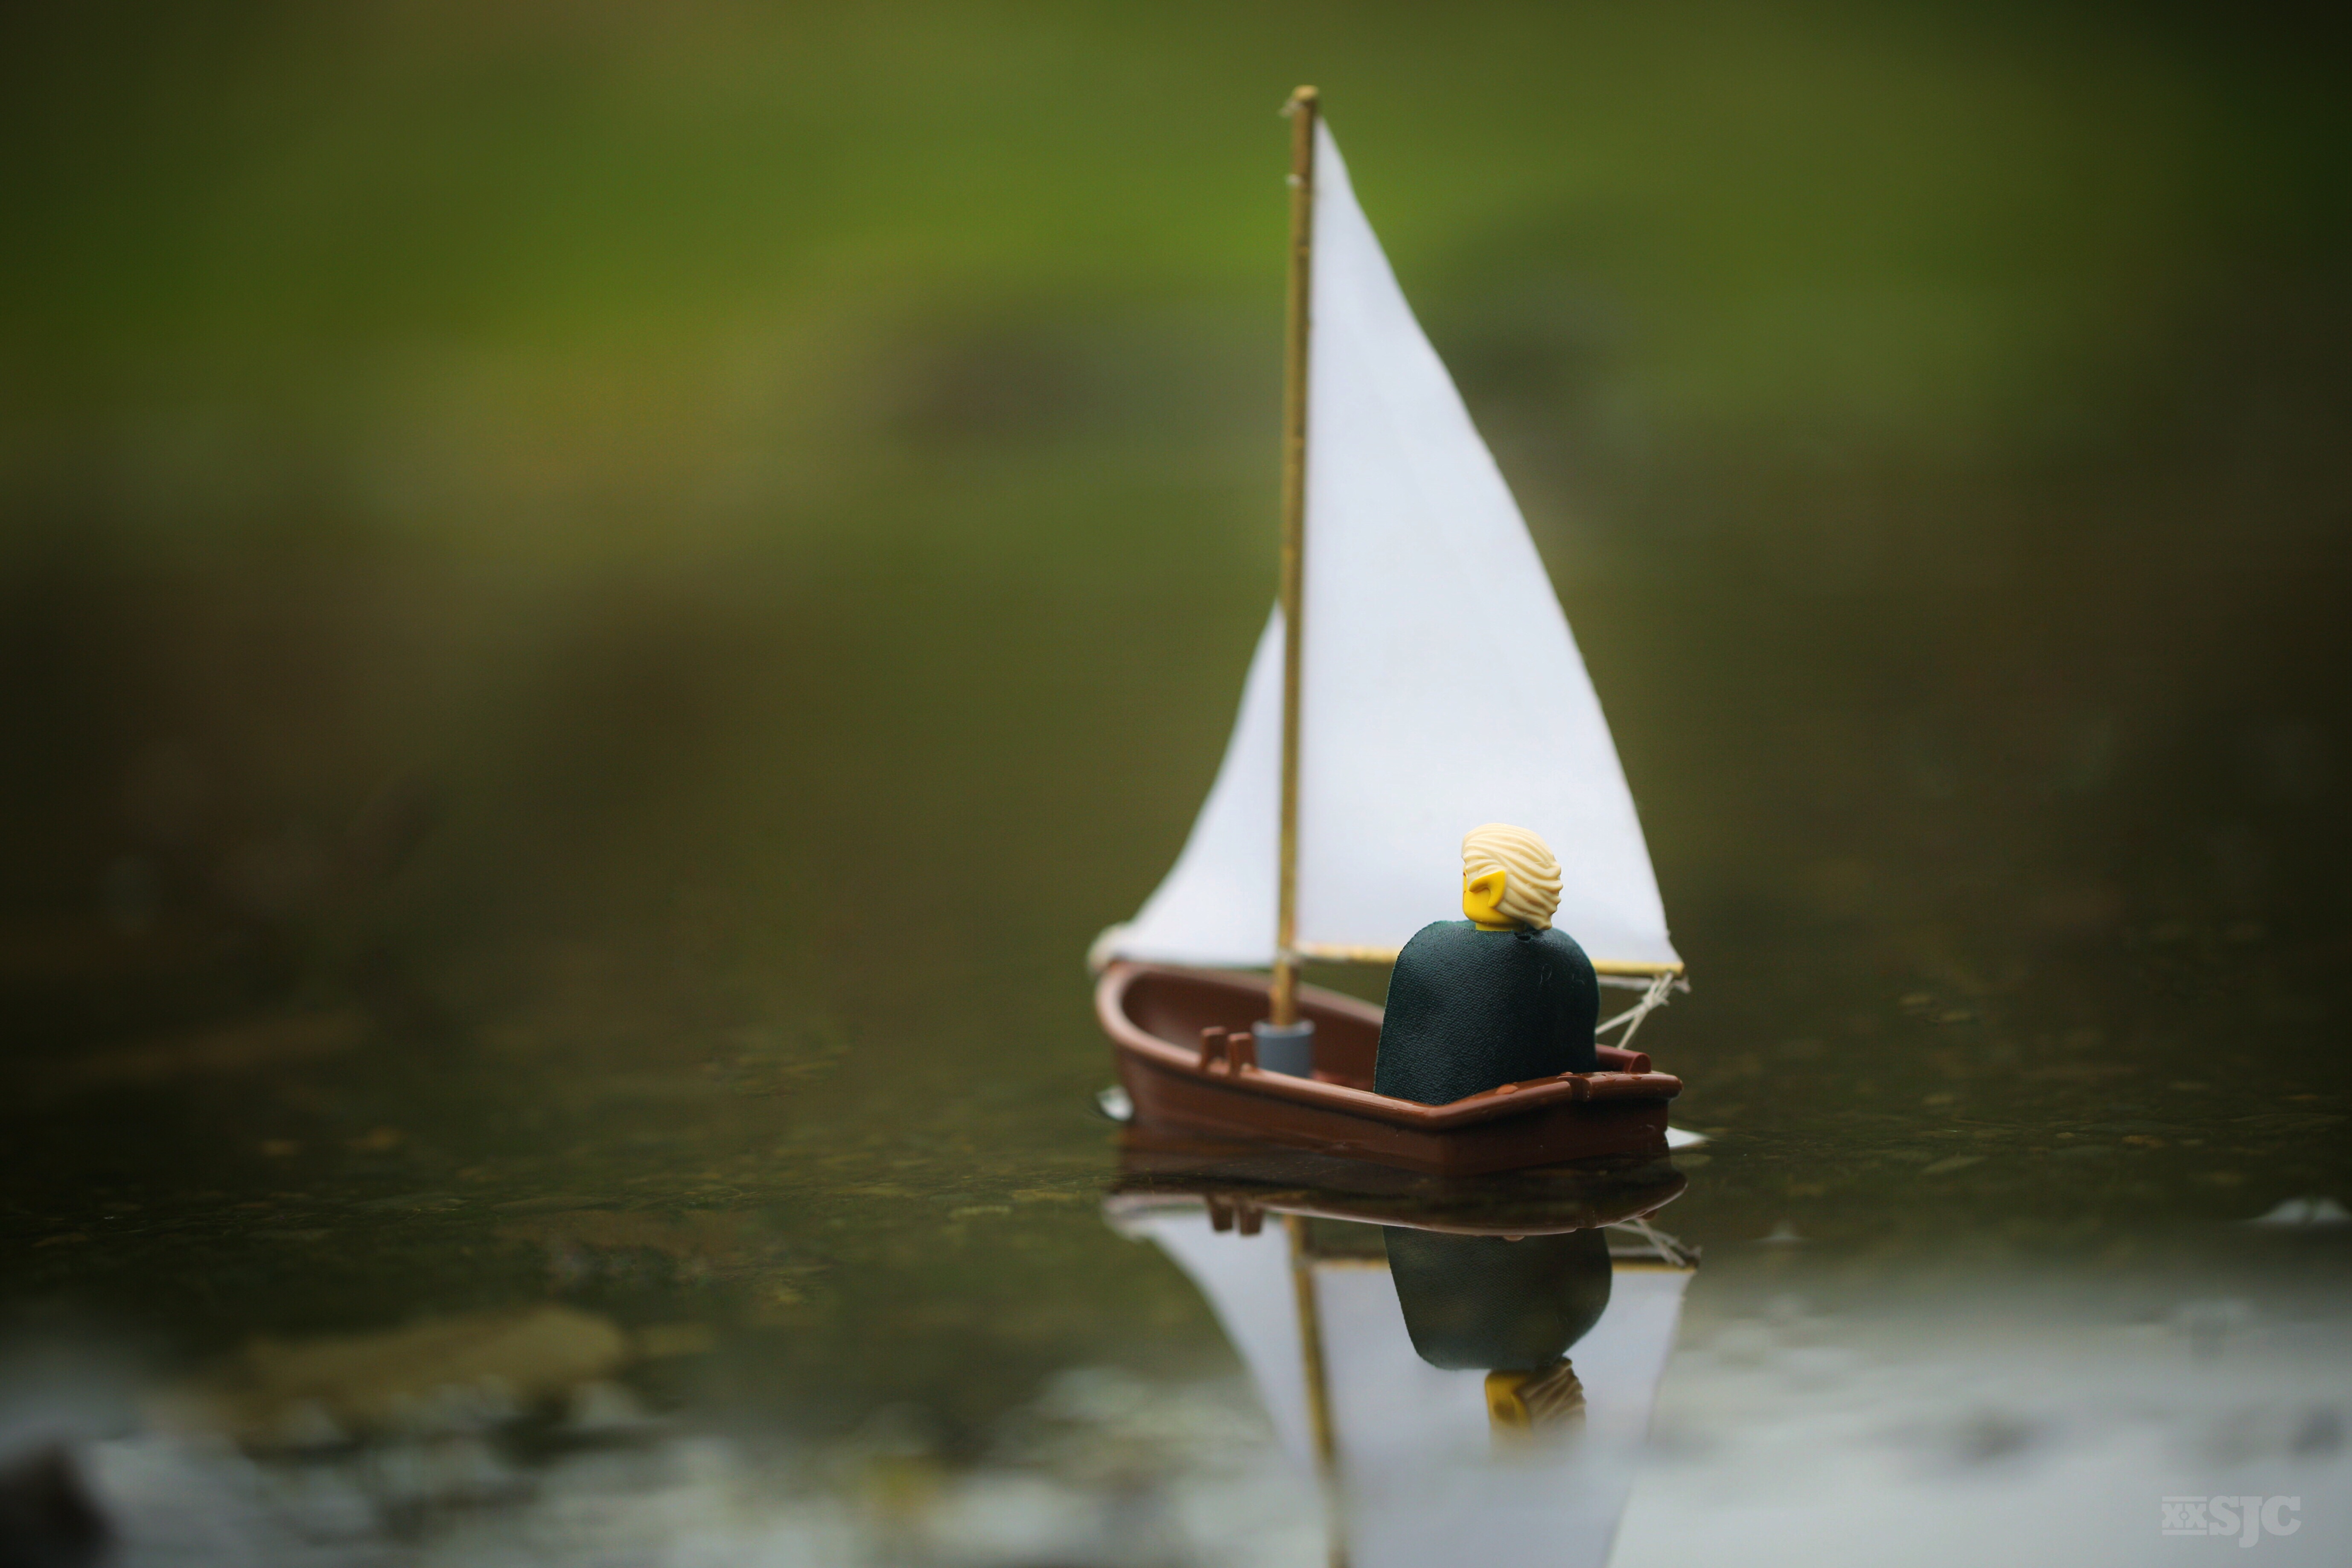 Lego Legolas sits in the back of a lego sailboat and sails away in a small puddle to parts unknown.